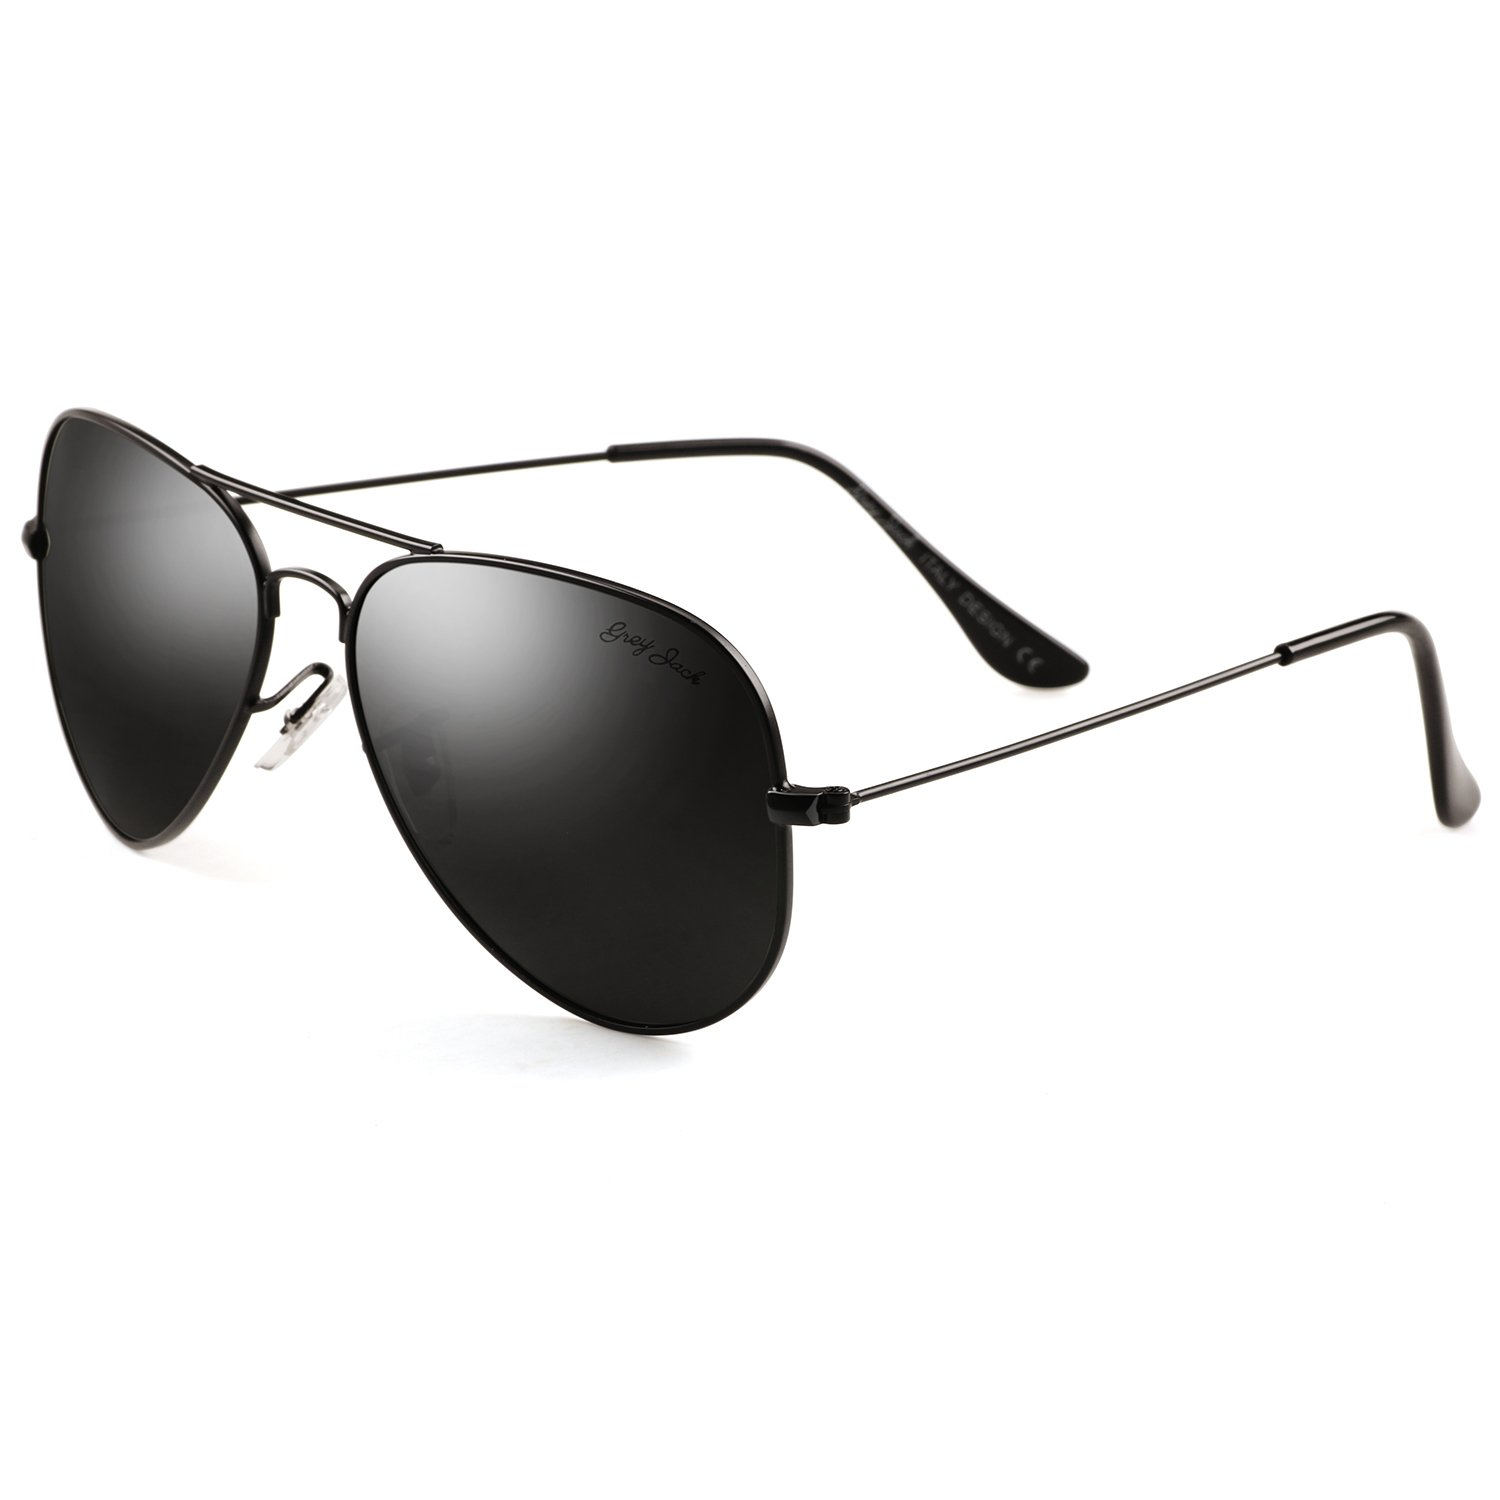 e012da6898928 Amazon.com  GREY JACK Polarized Classic Aviator Sunglasses Lightweight  Style for Men Women  Sports   Outdoors